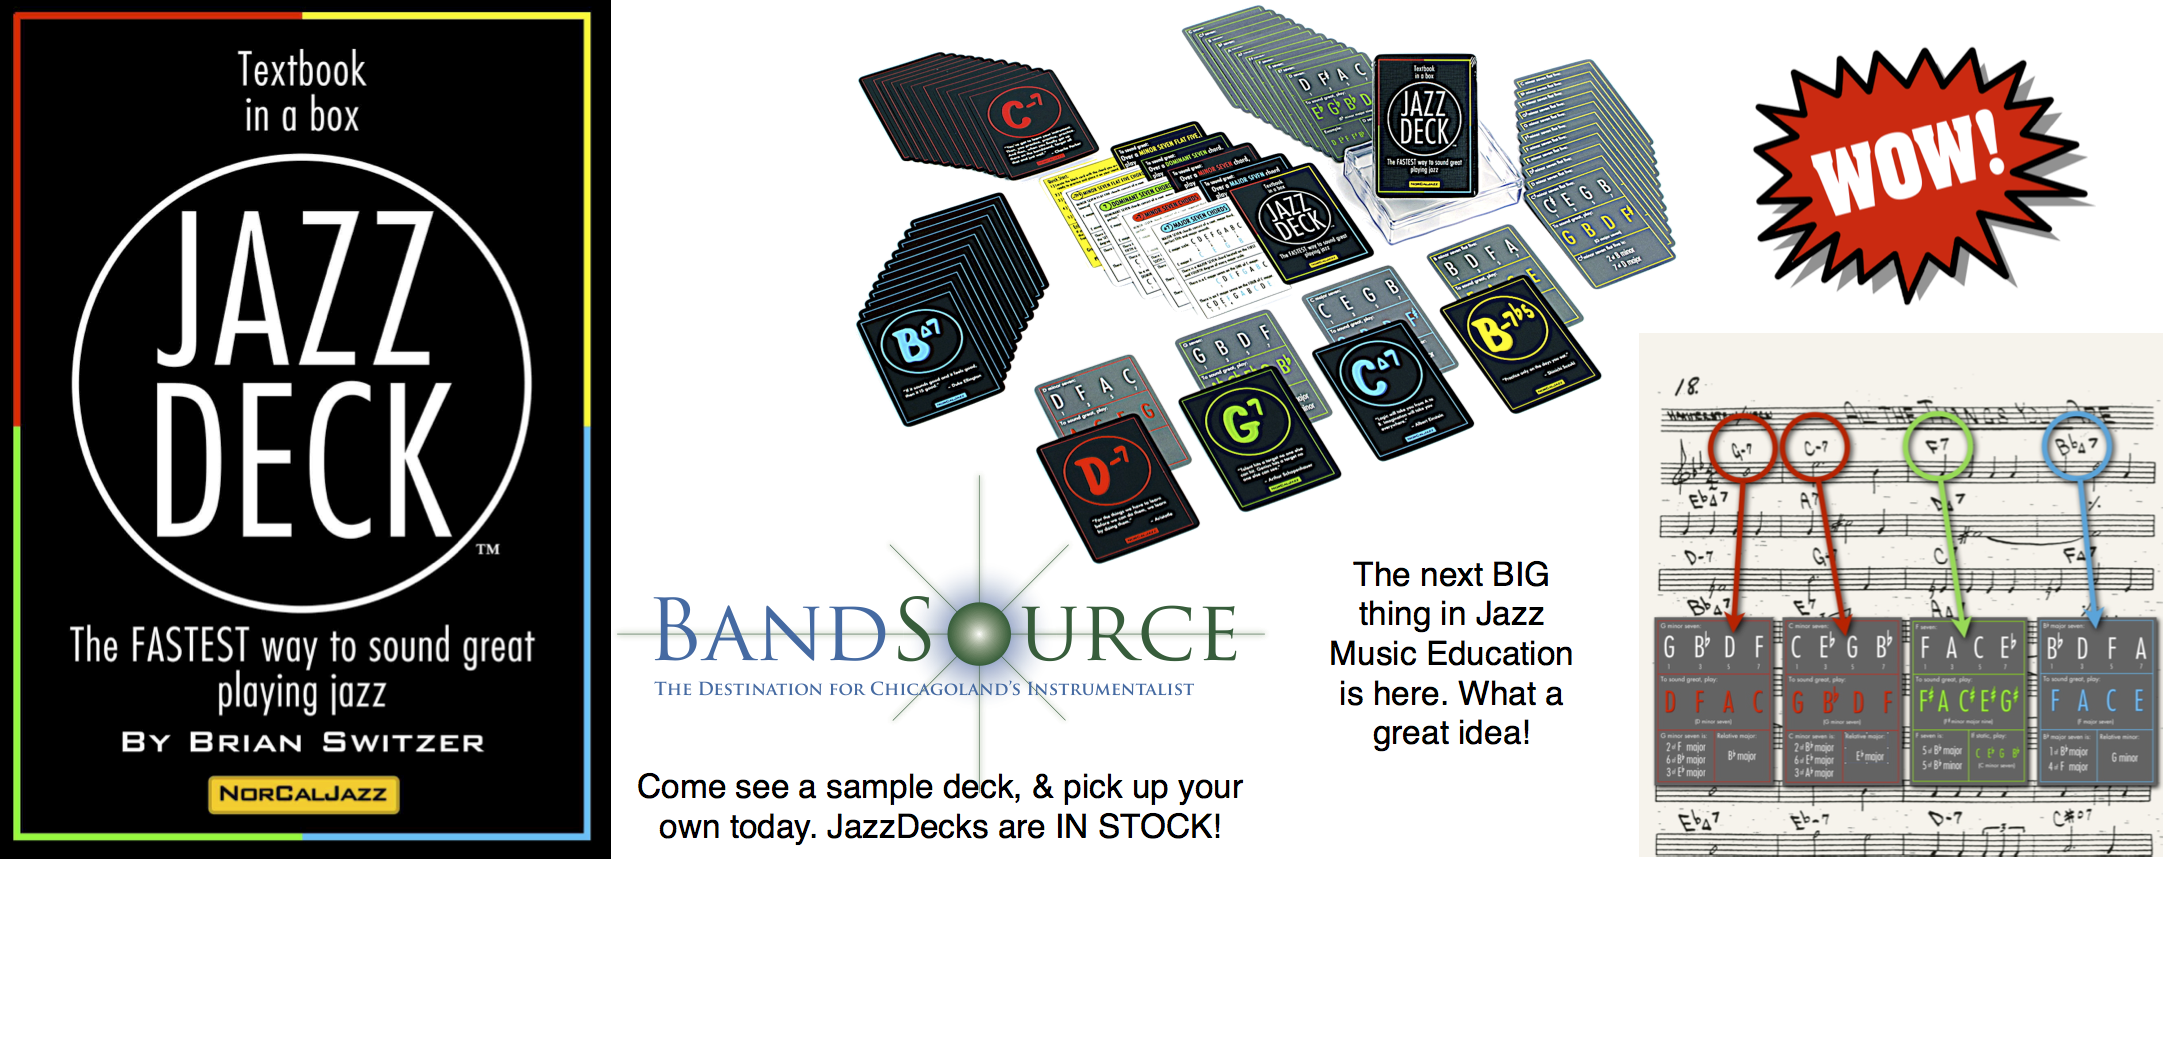 JazzDeck online banner sample. Created by BandSource in Illinois.